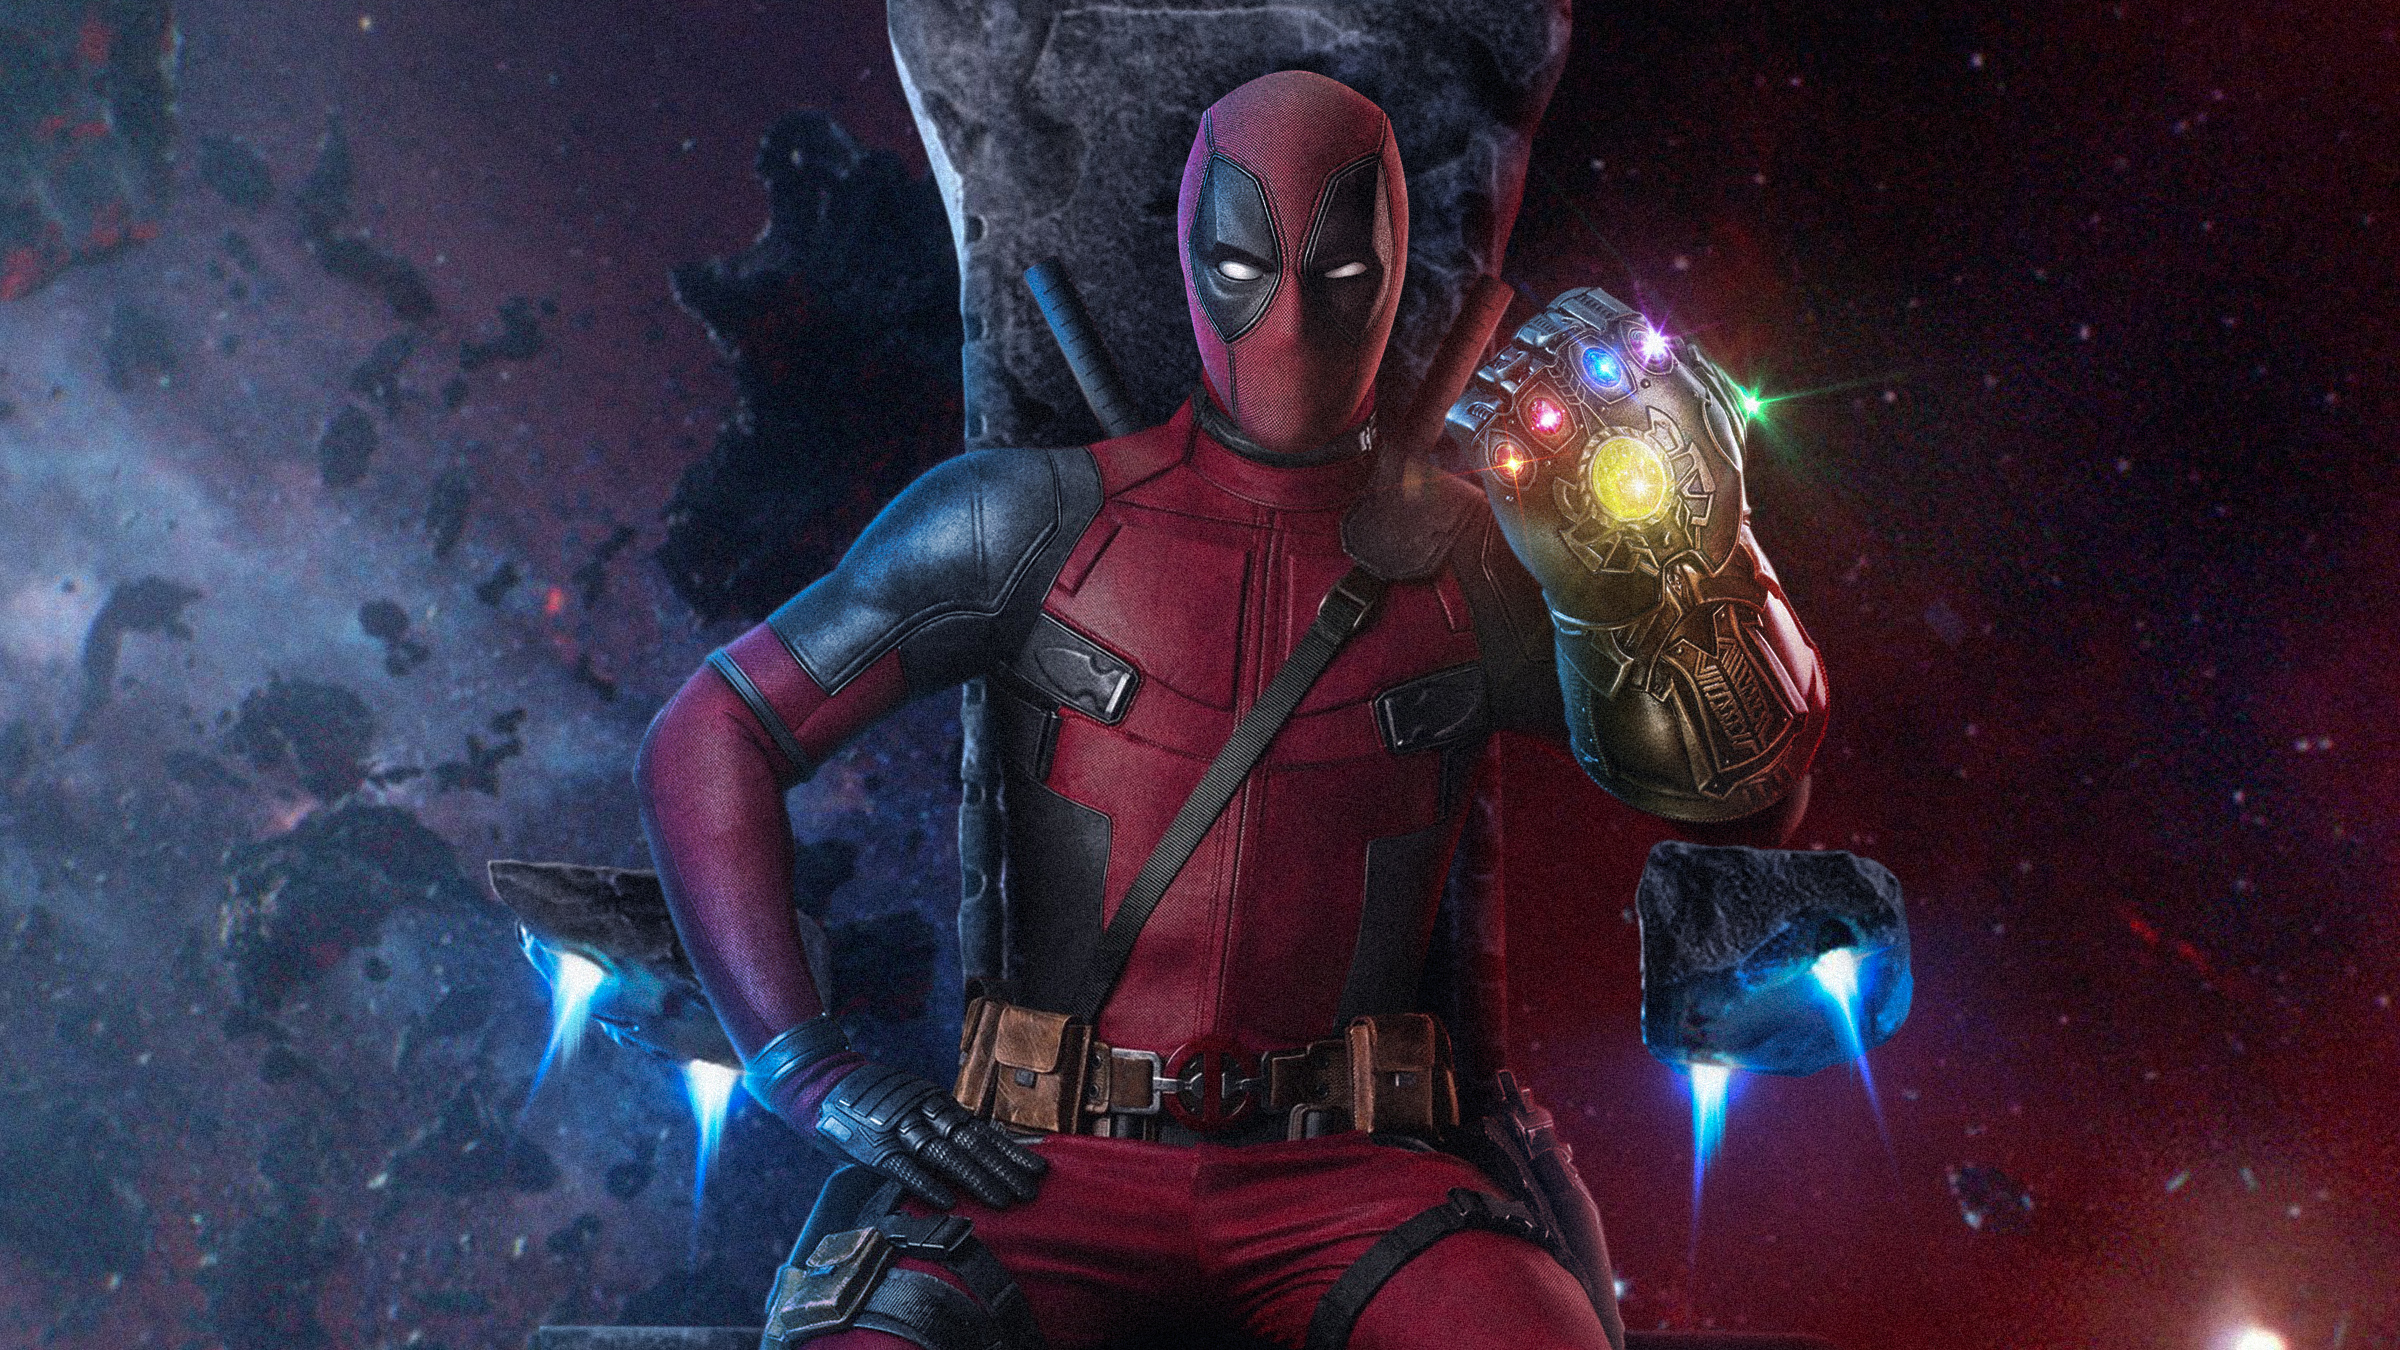 1920x1080 Deadpool With Infinity Gauntlet Laptop Full Hd 1080p Hd 4k Wallpapers Images Backgrounds Photos And Pictures